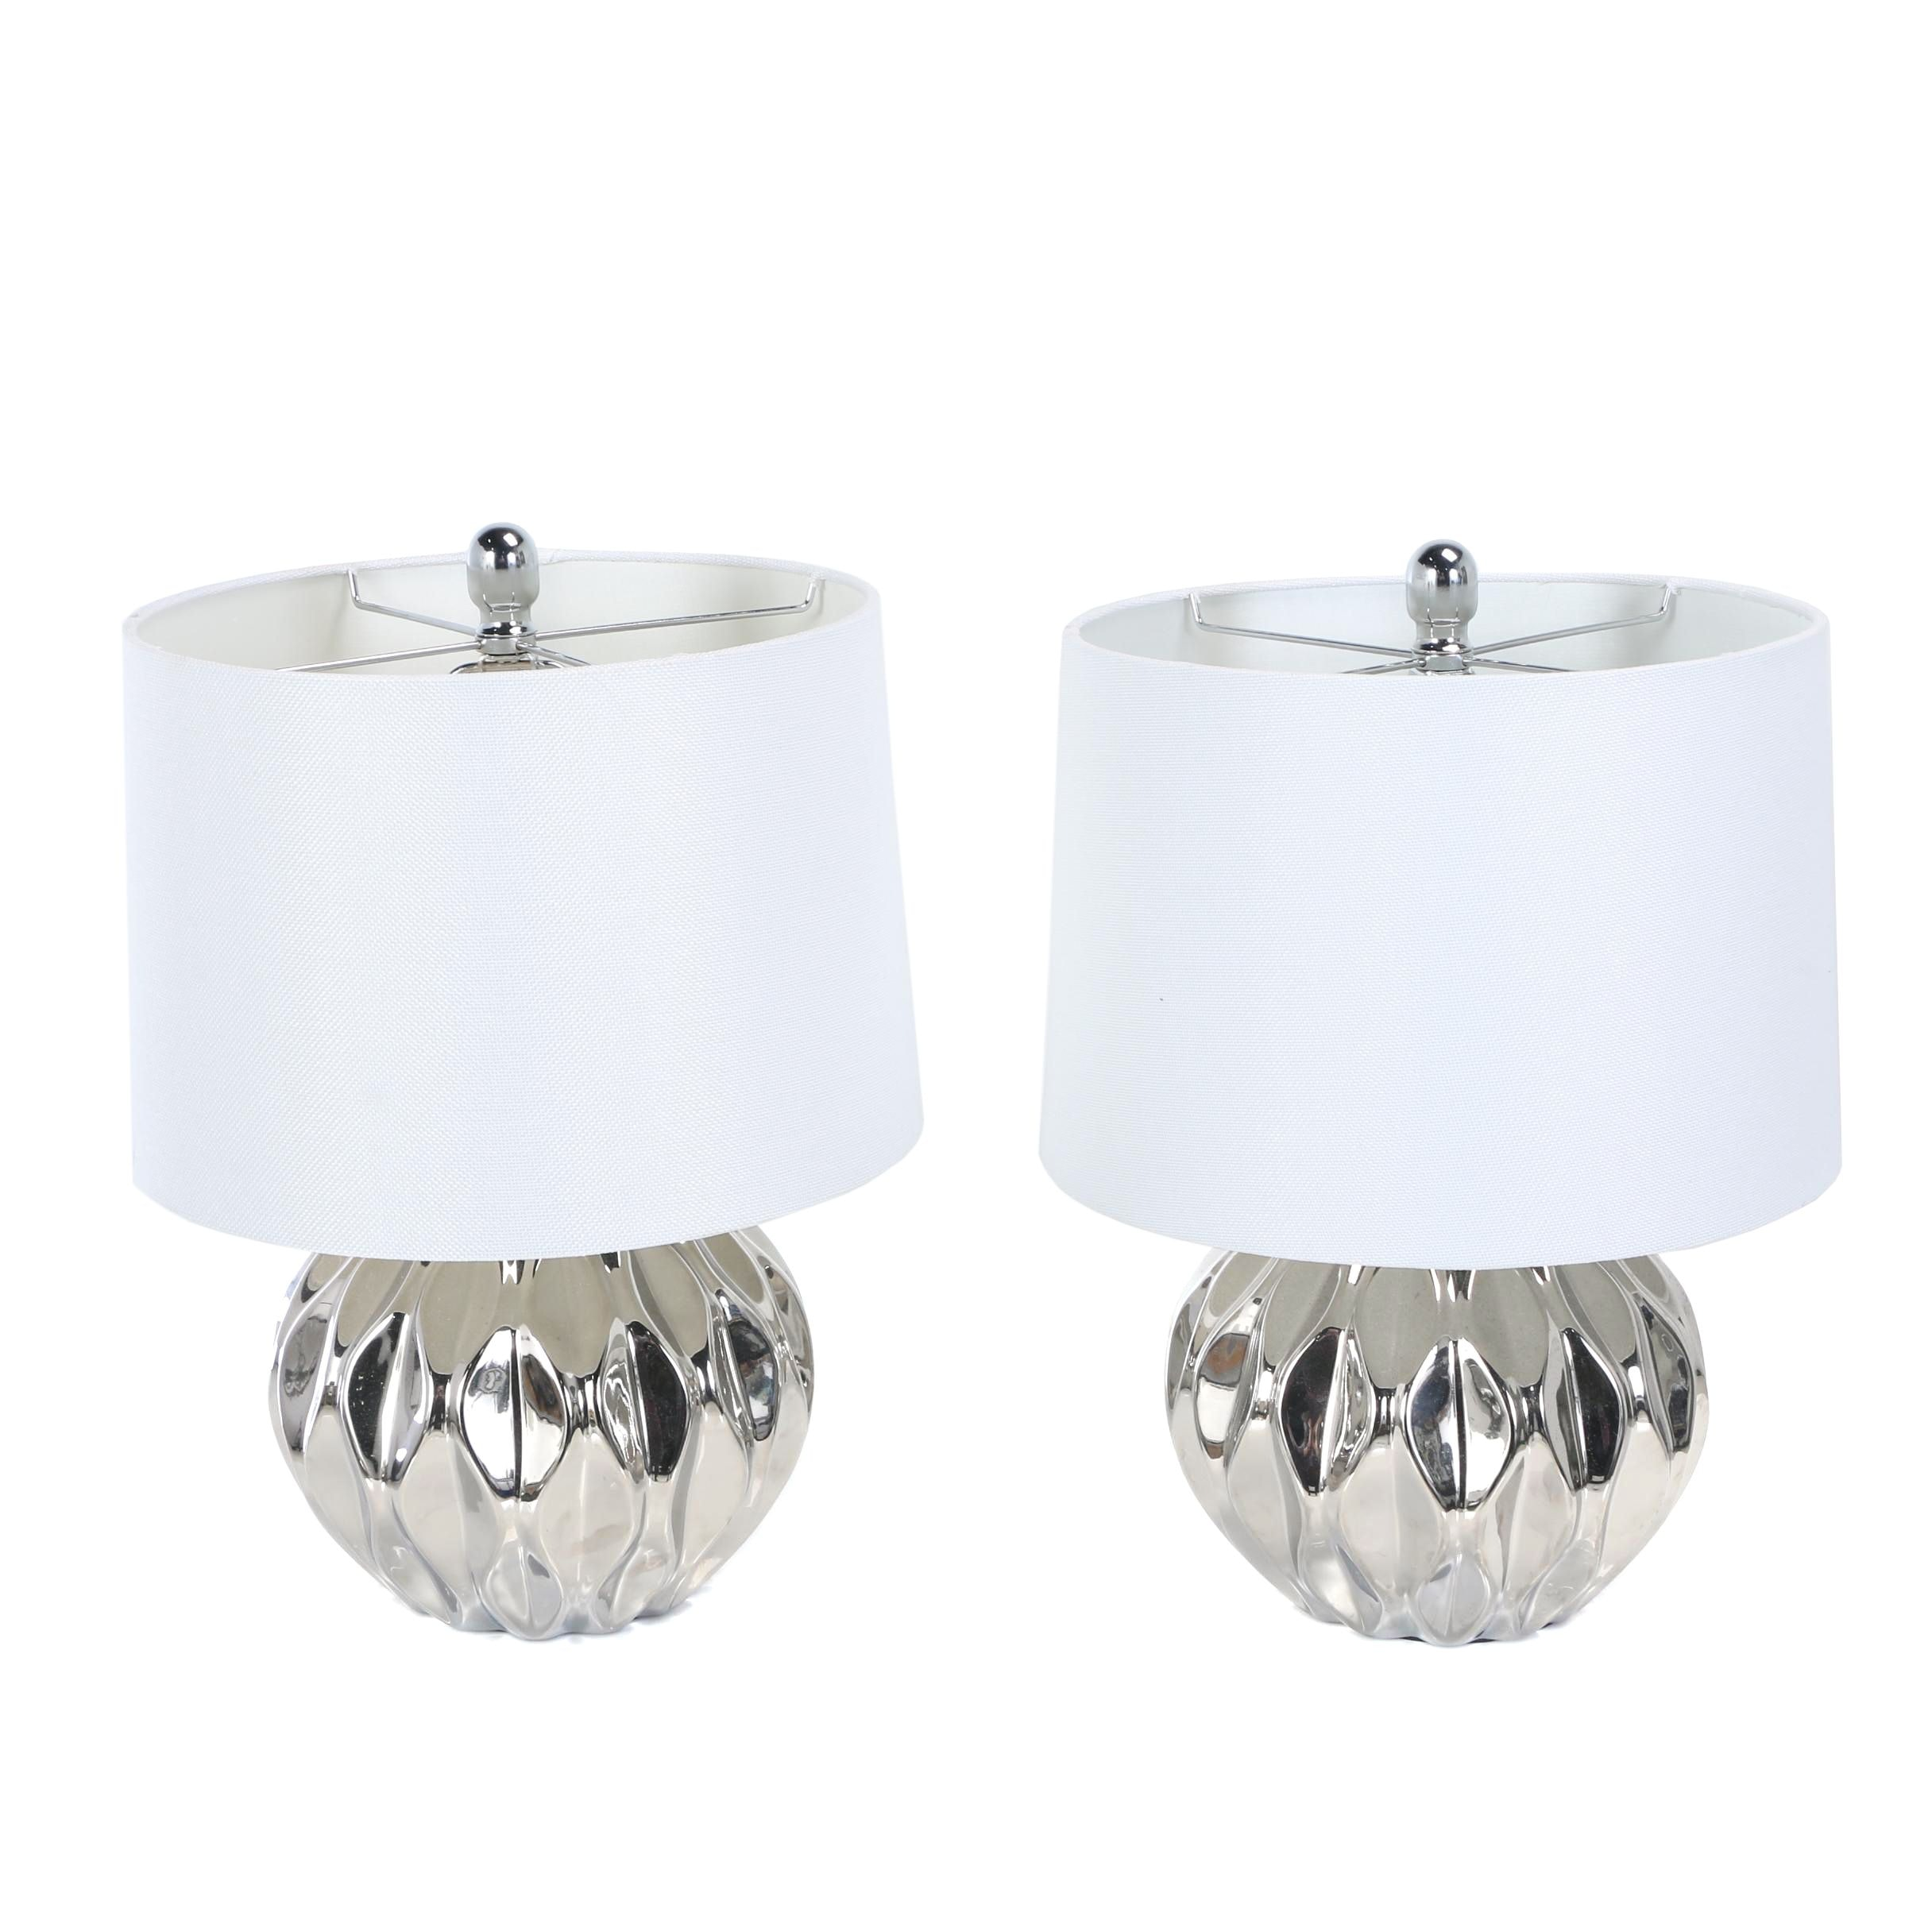 Modernist Style Chrome-Finished Ceramic Table Lamps